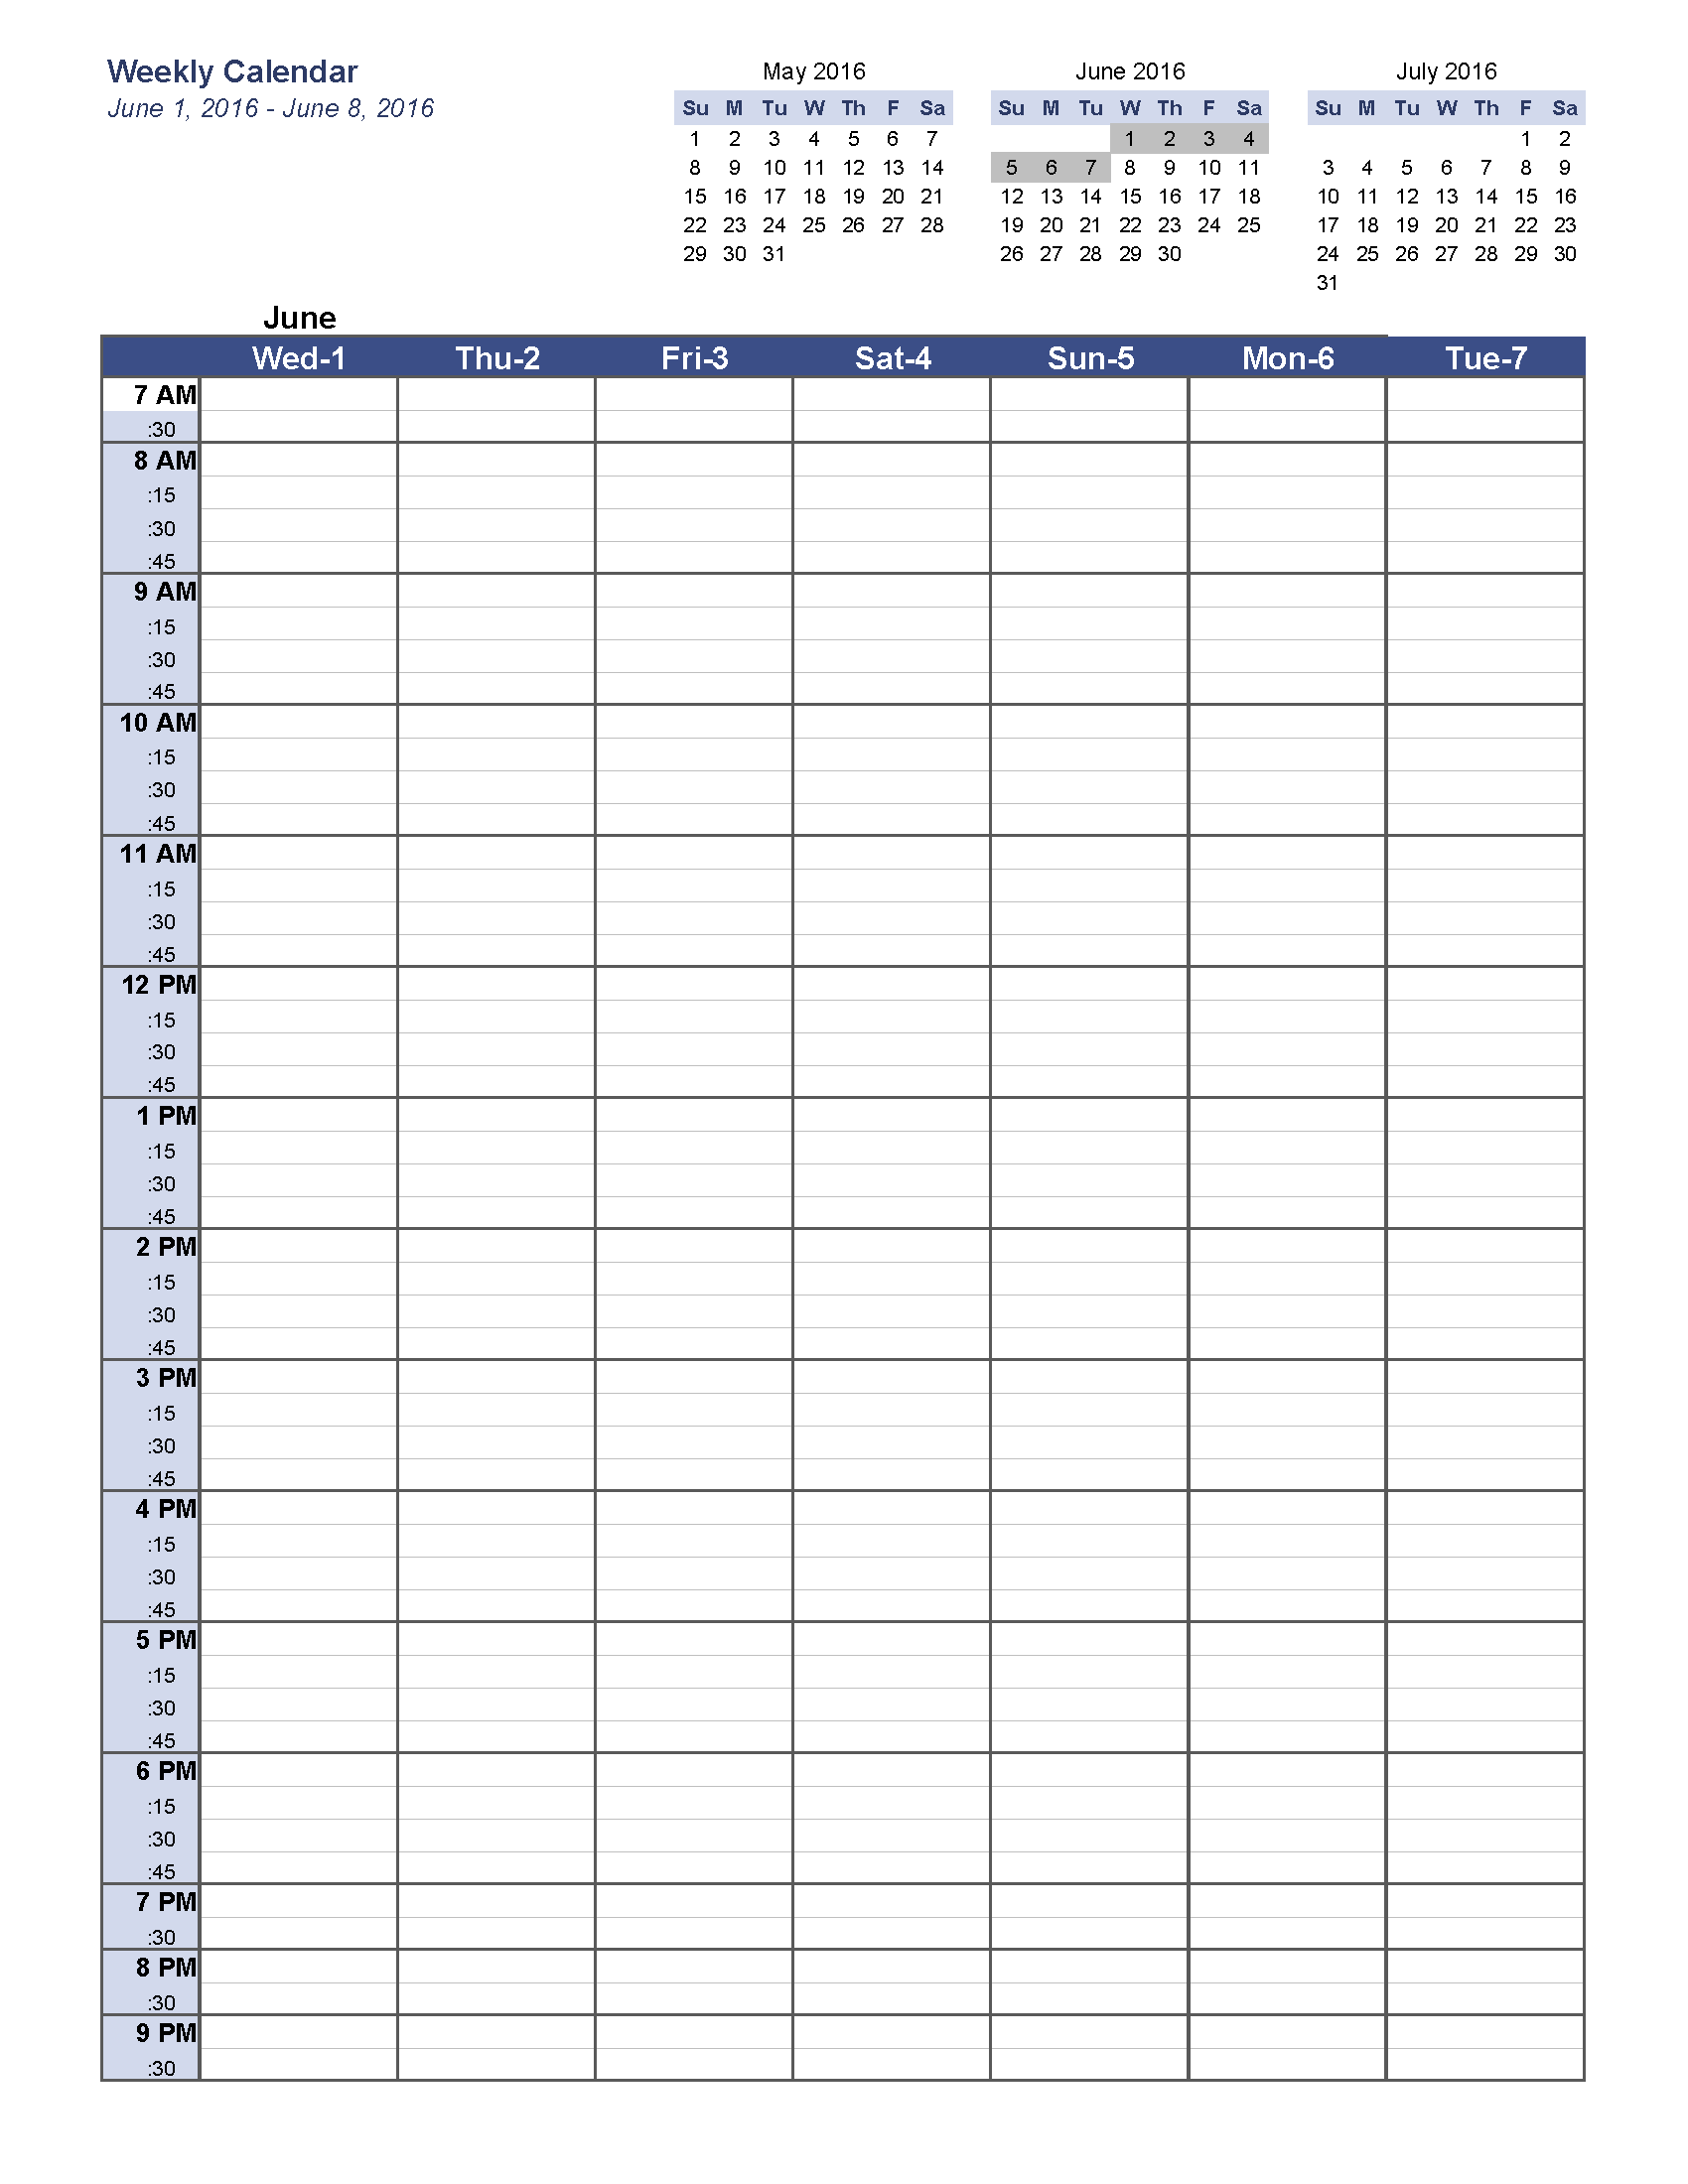 Calendar Planner Template : June weekly calendar blank printable templates